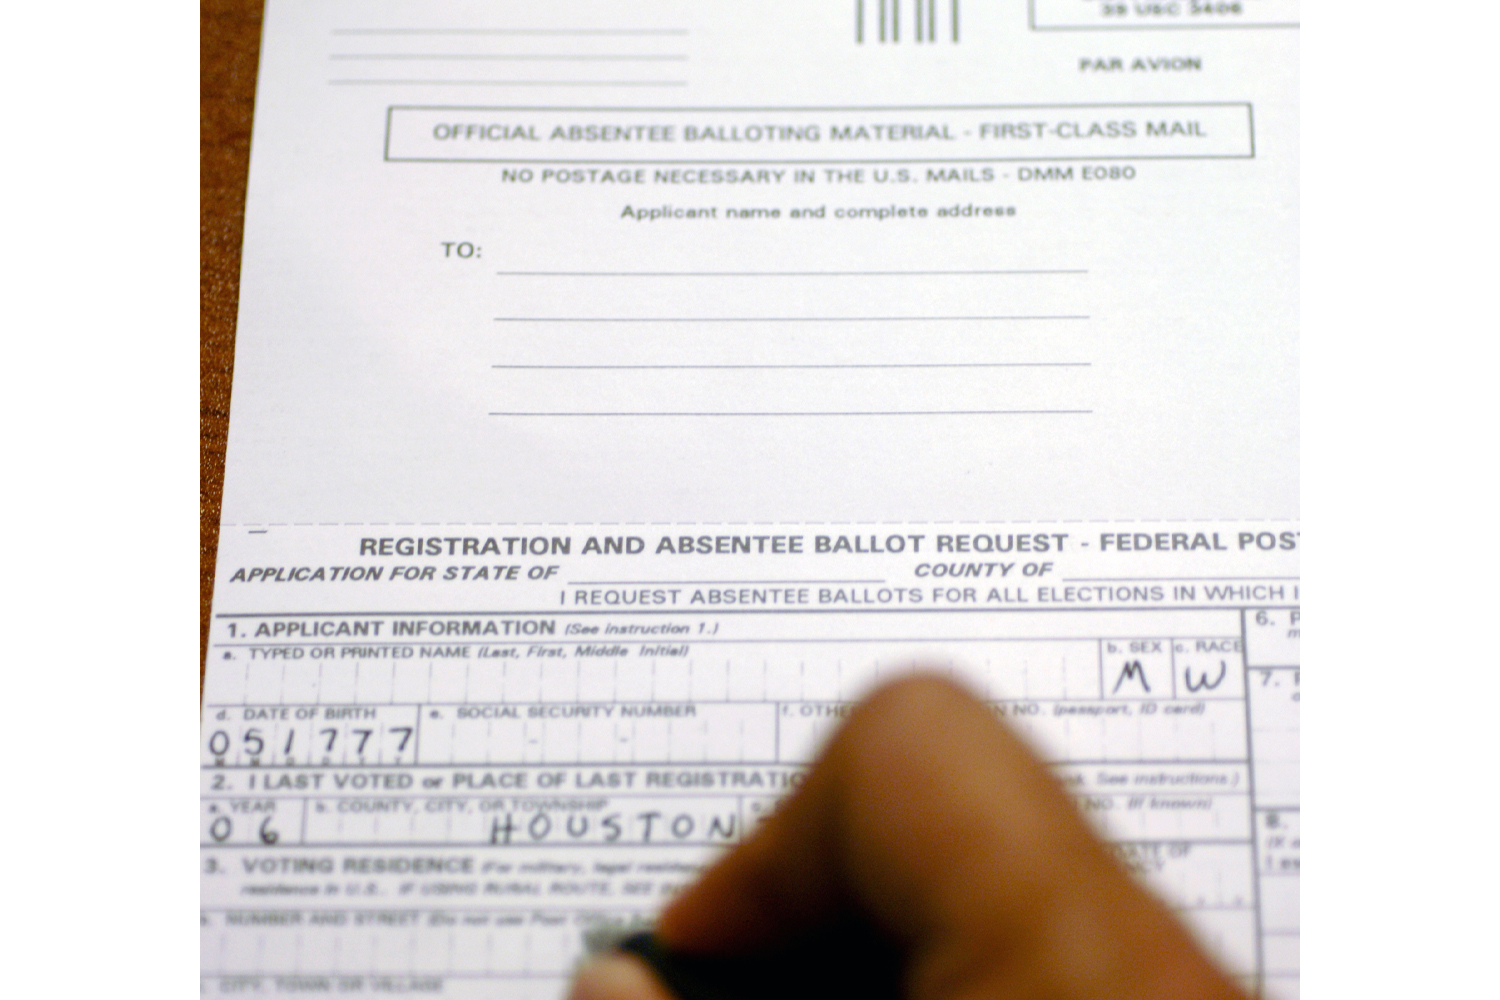 An image of someone filling out an absentee ballot/voting by mail.